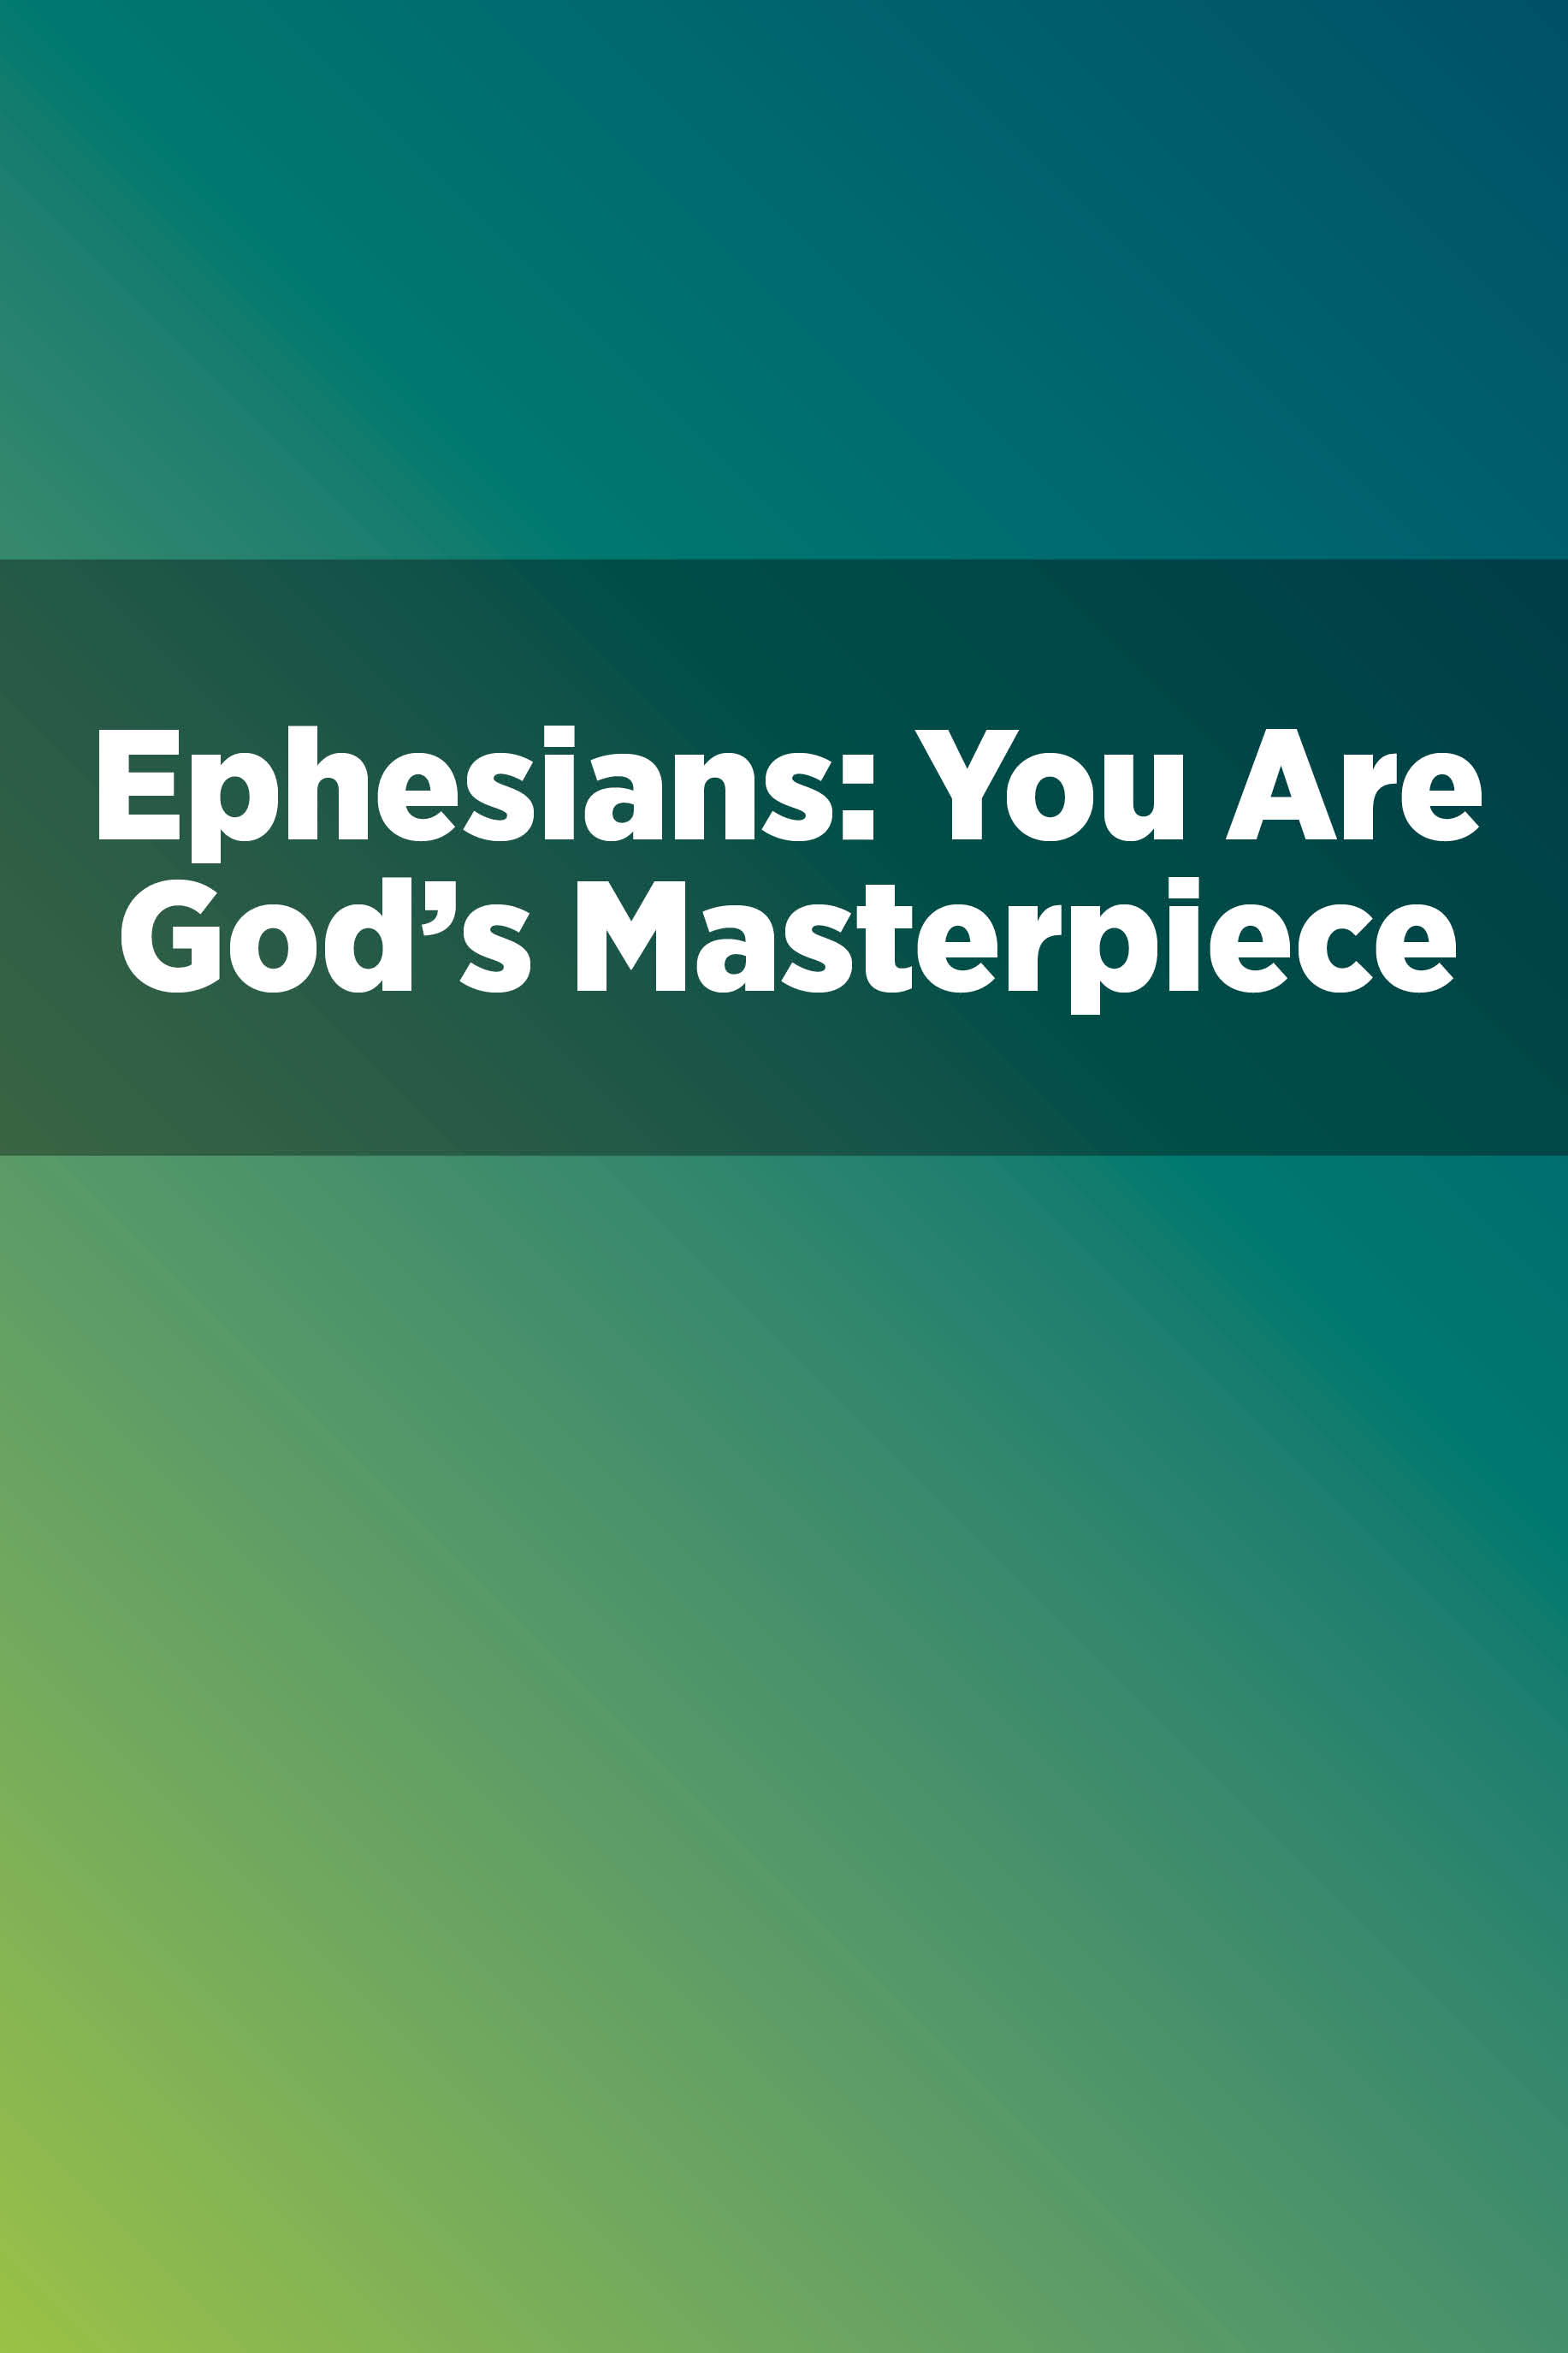 Ephesians: You Are God's Masterpiece